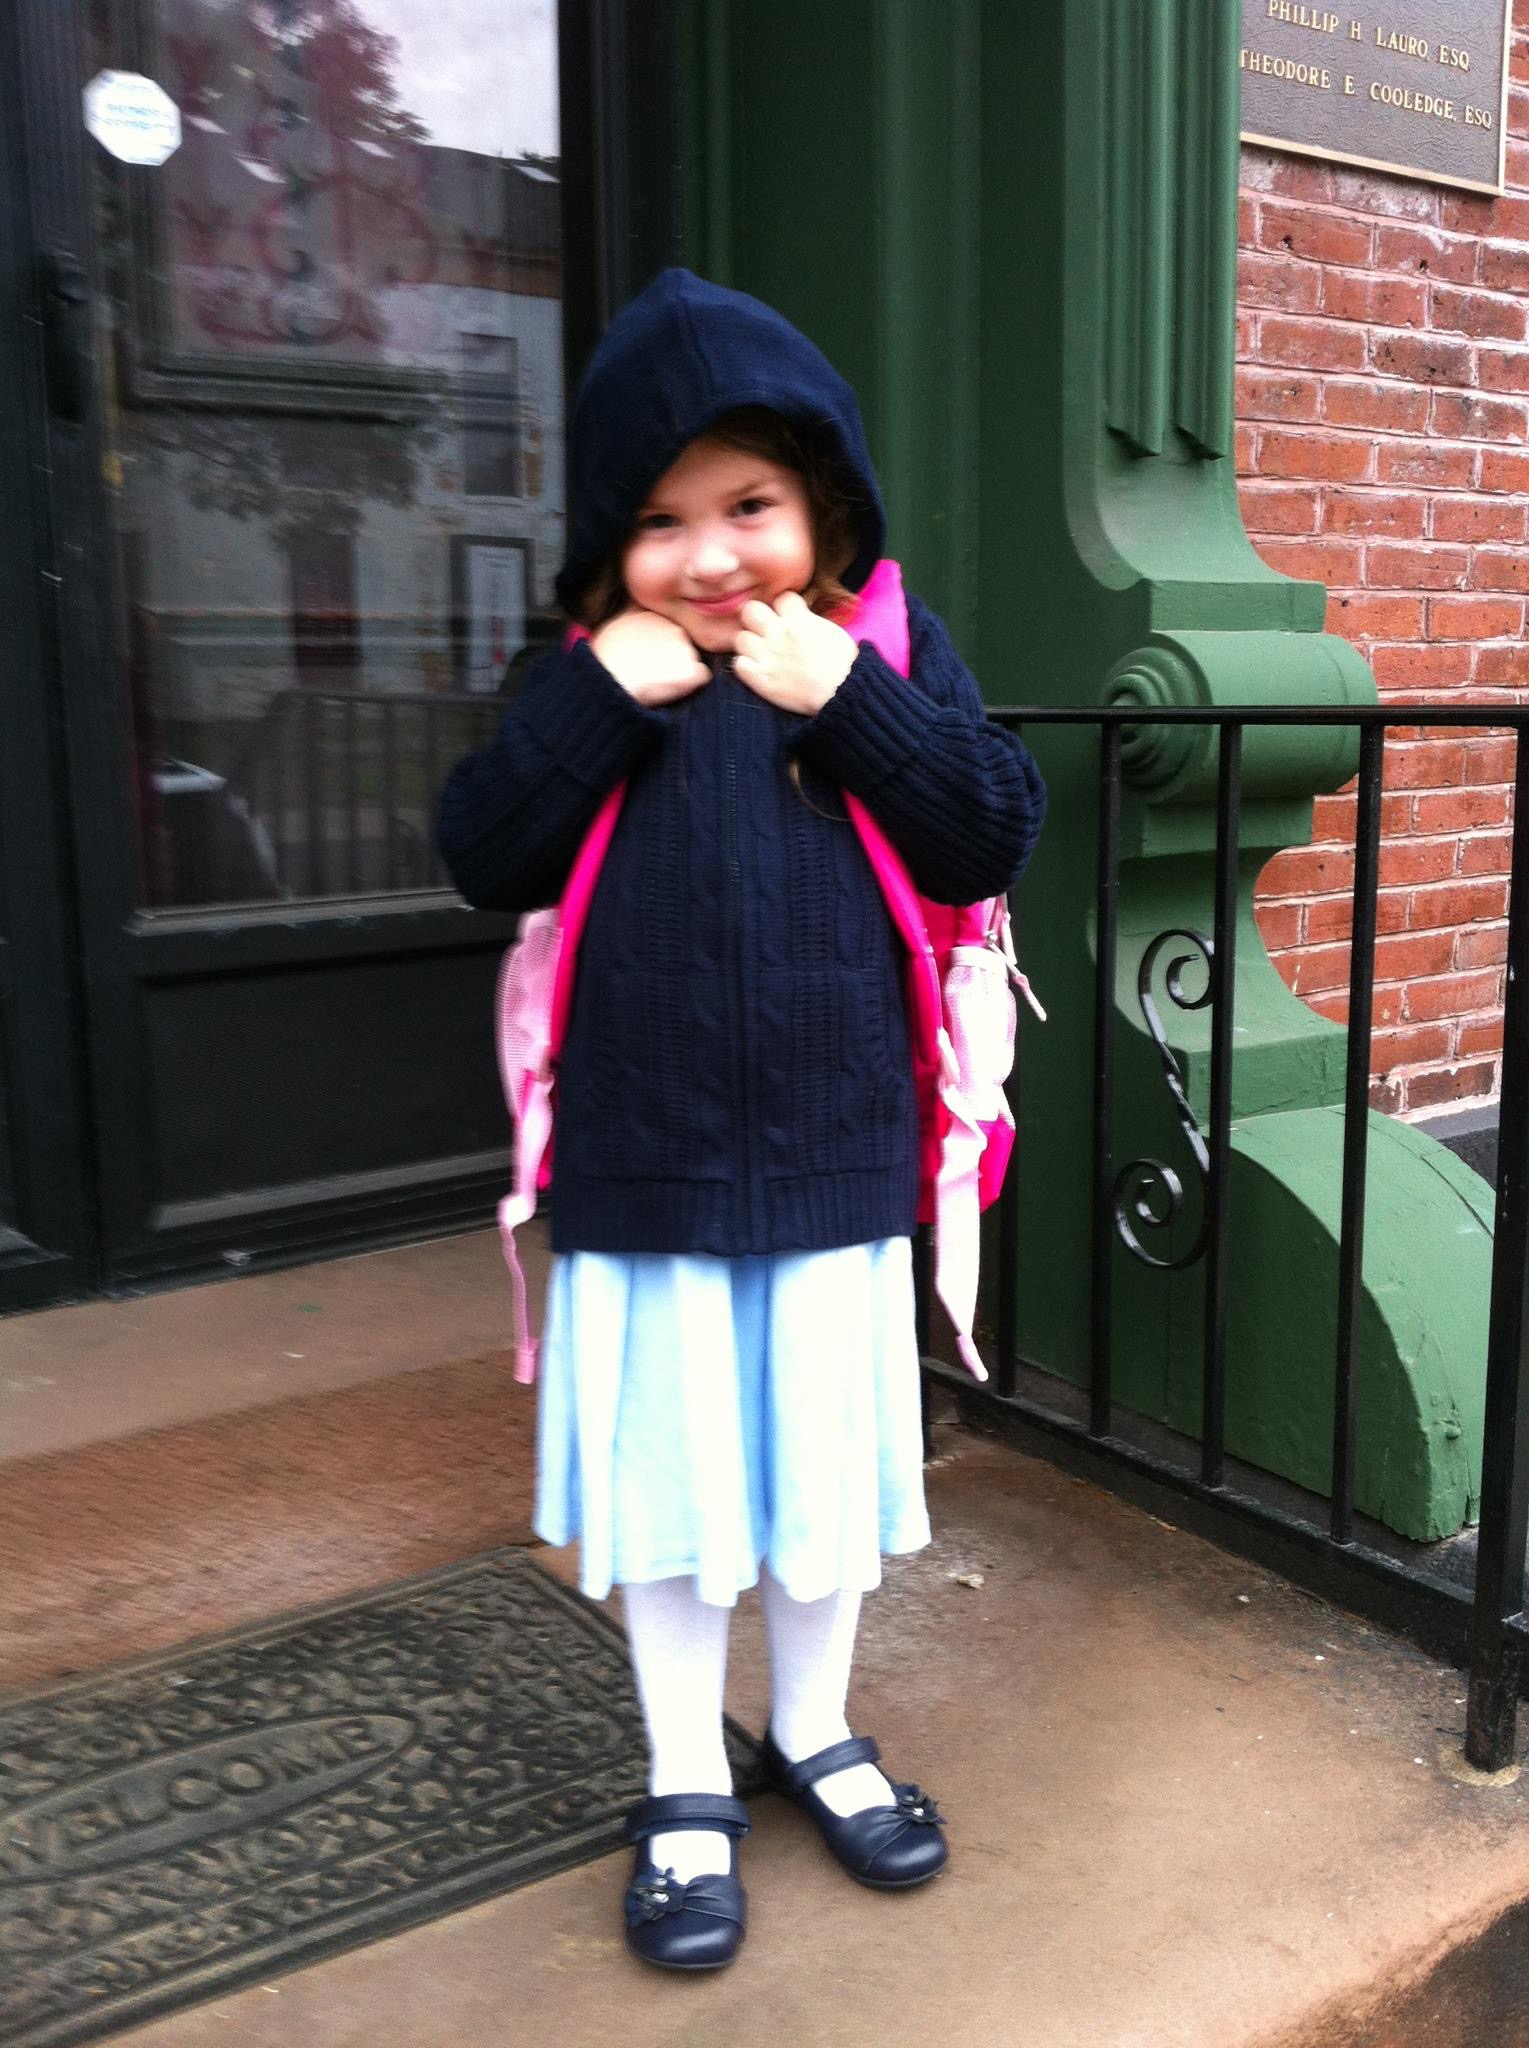 The author's daughter, LuLu,on her first day on school